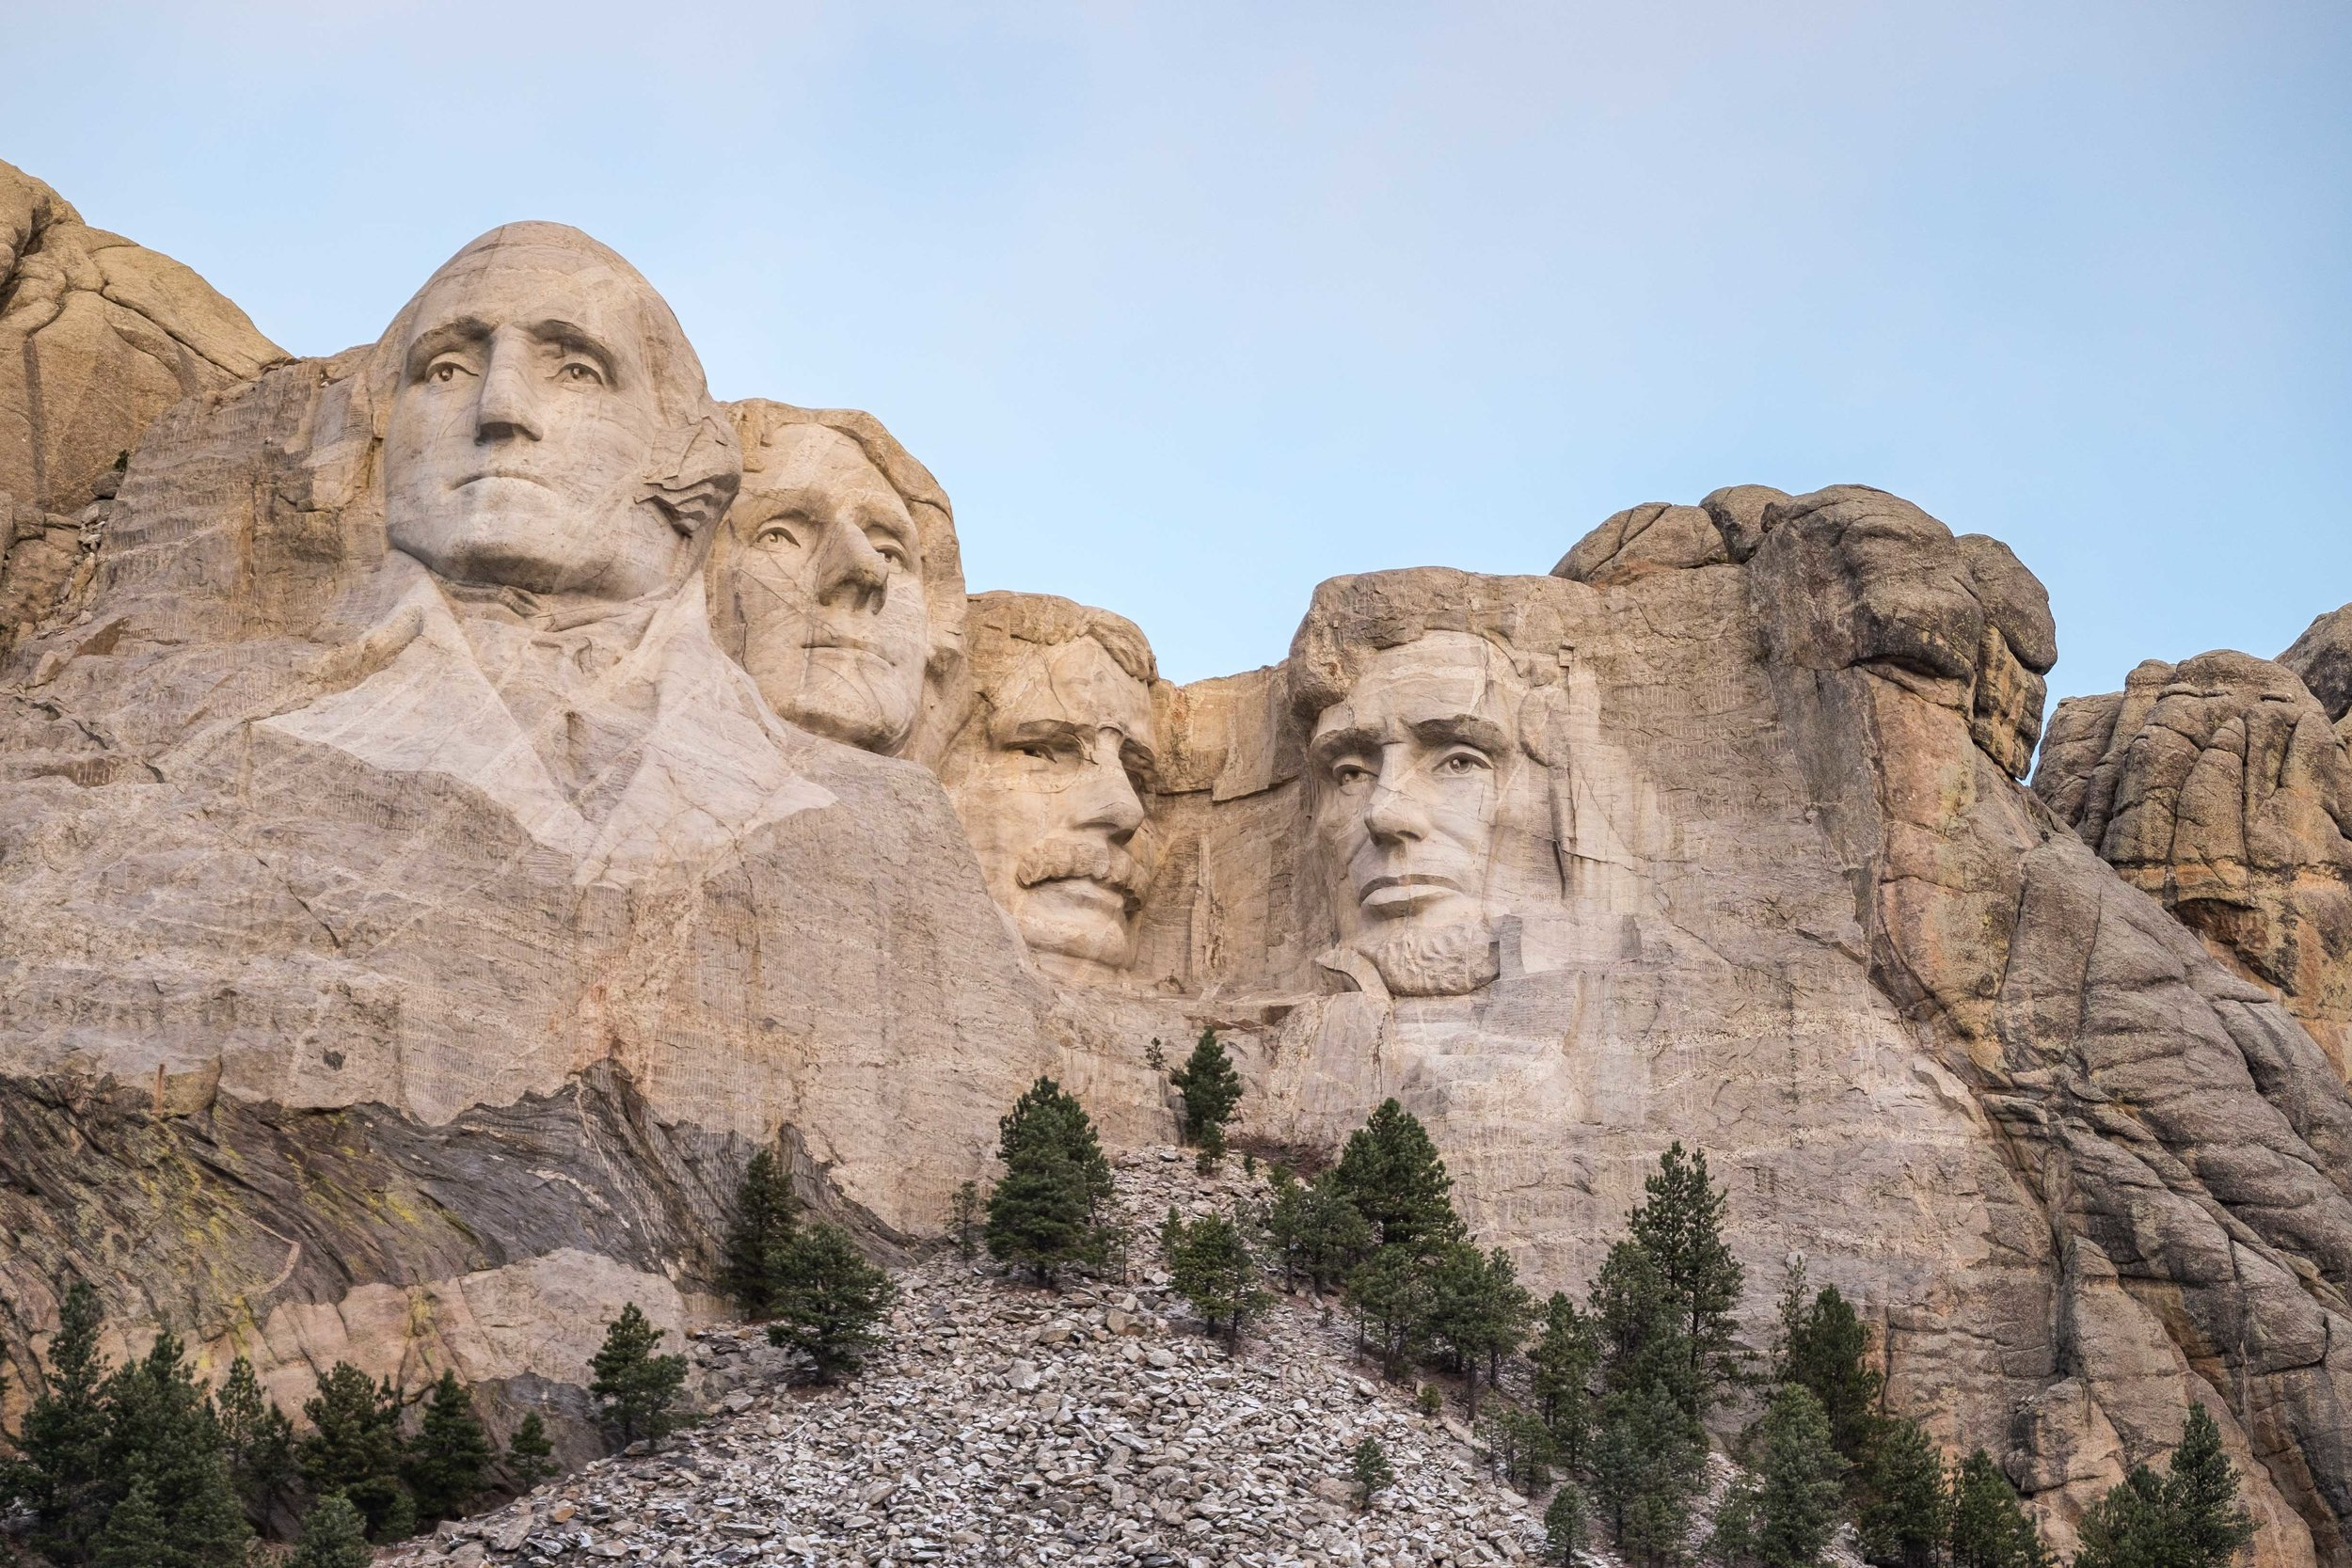 Just like the National Park Service,  Mount Rushmore  also celebrated a milestone birthday during 2016, turning 75 years old in October.